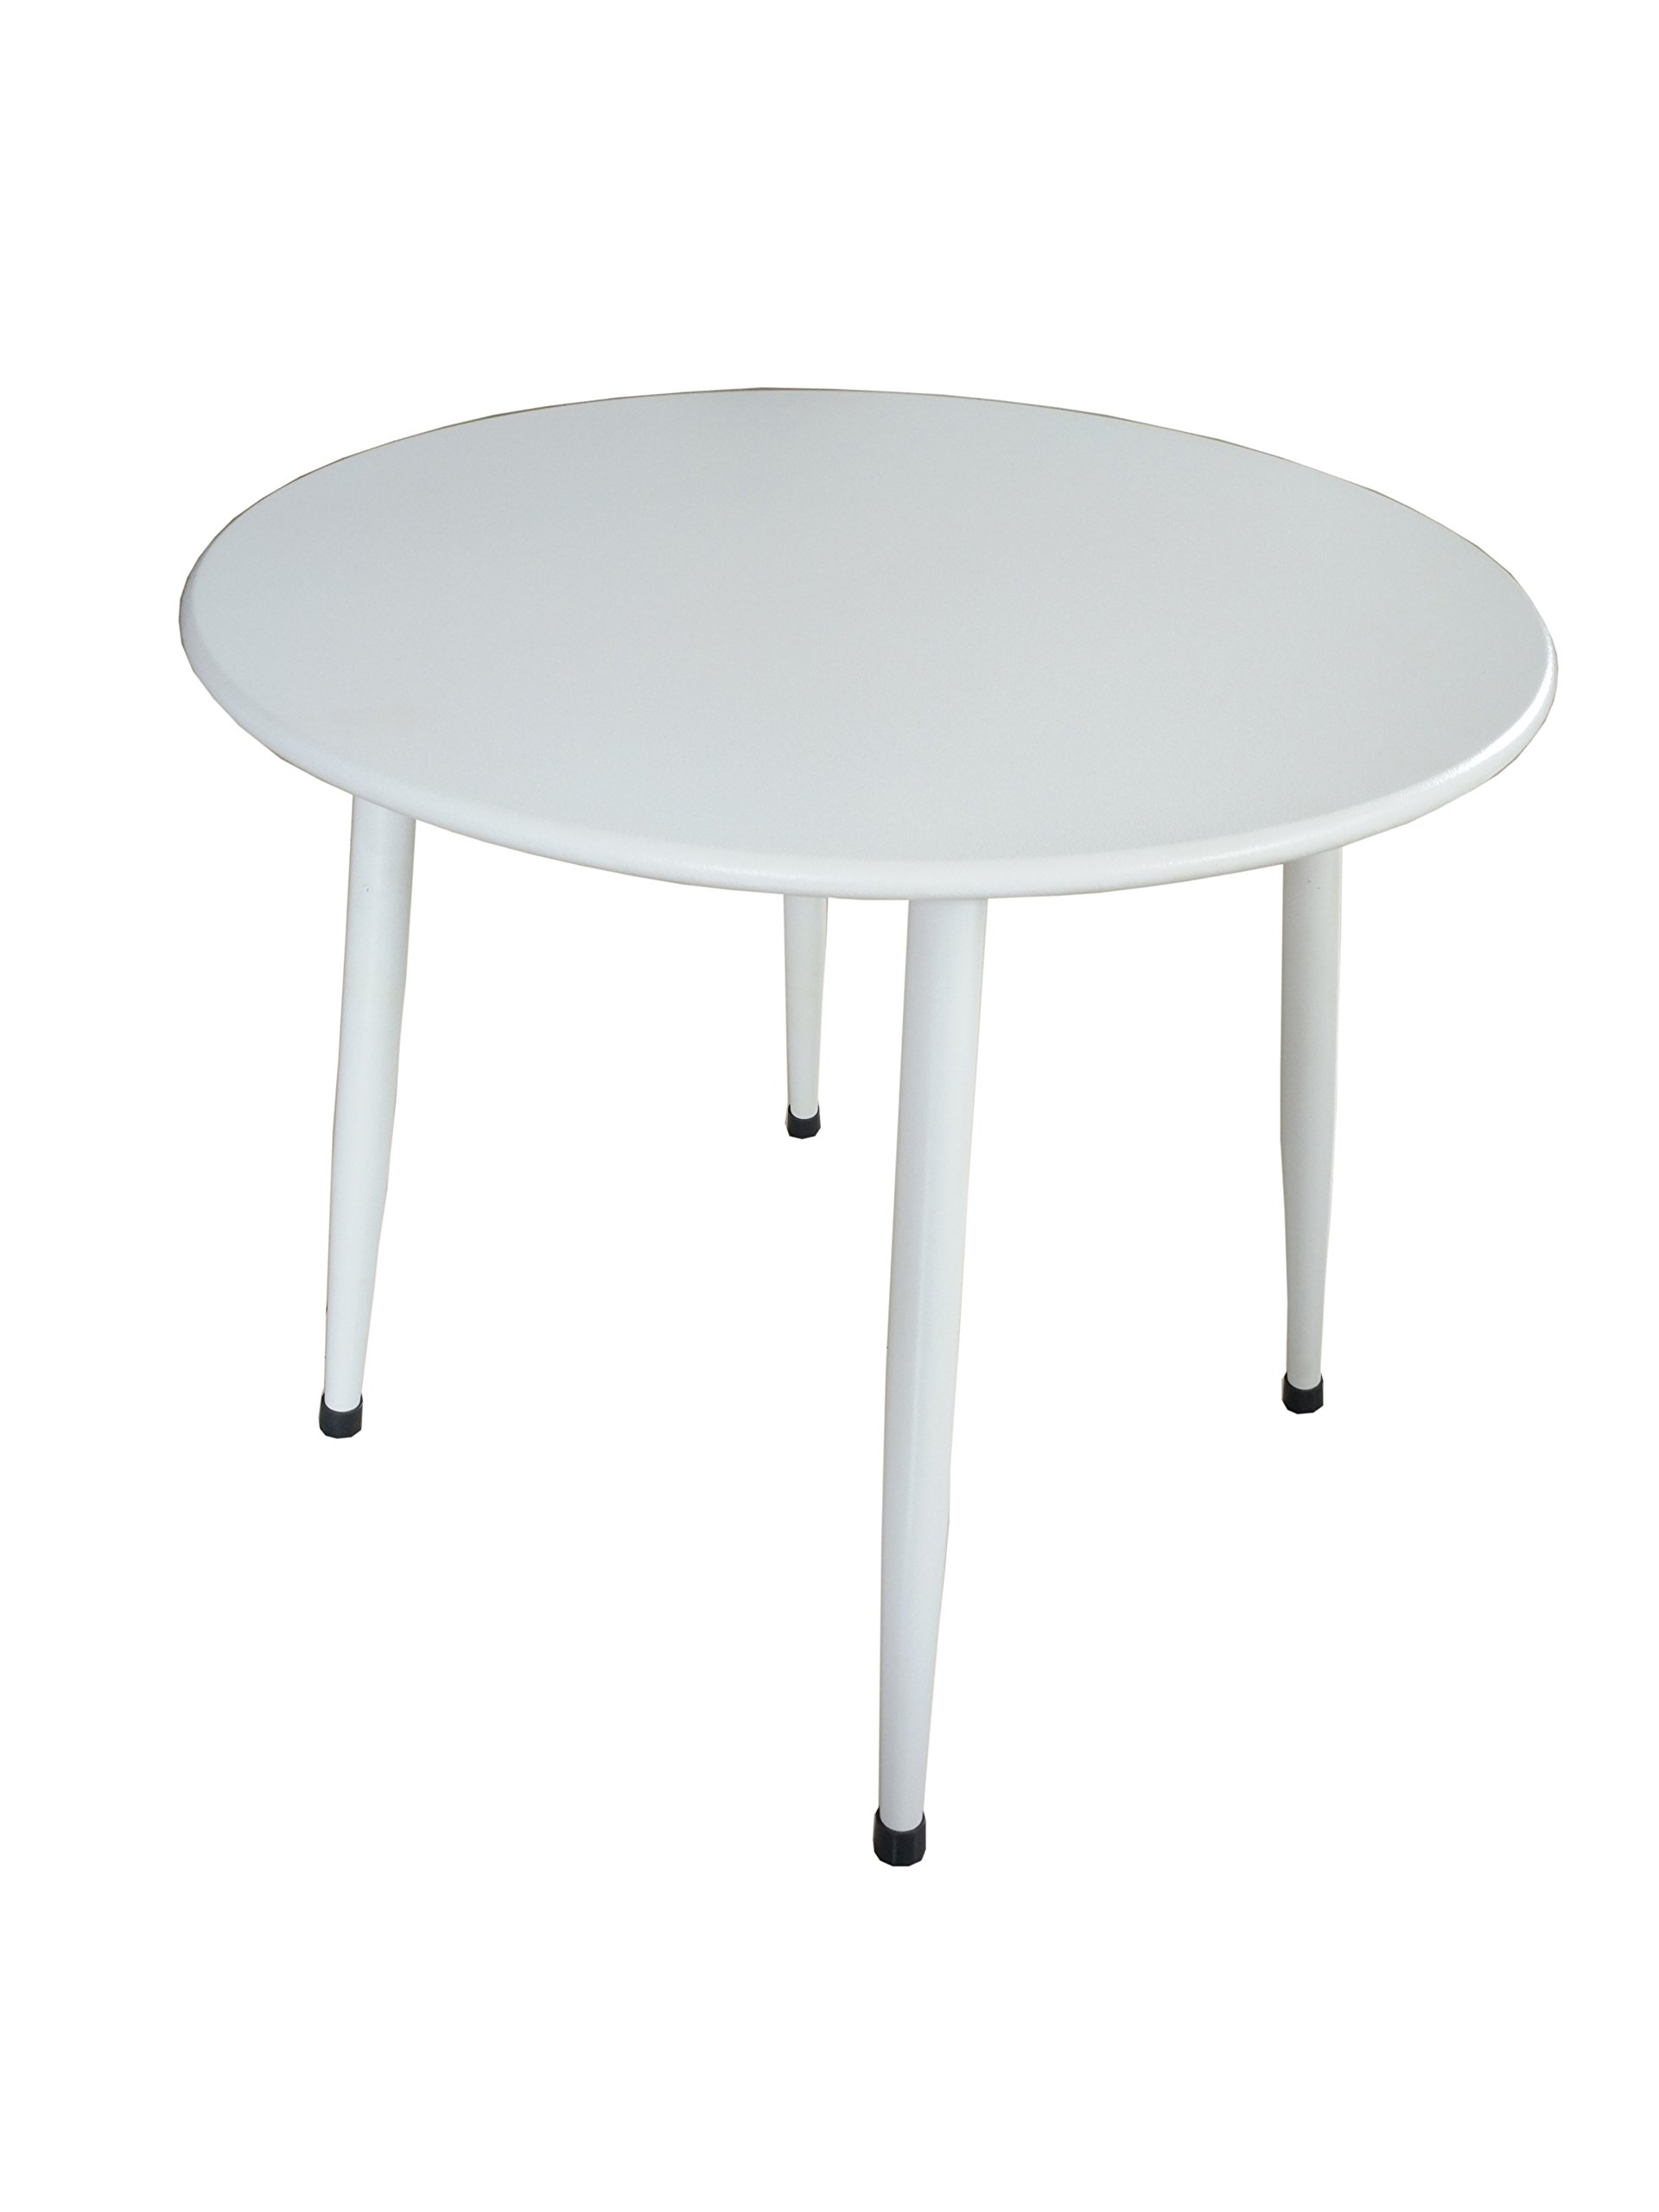 JDWD Steel Patio Side Table, UV-Protection Coffee Table, Small Round KD Tea Table, White (White)